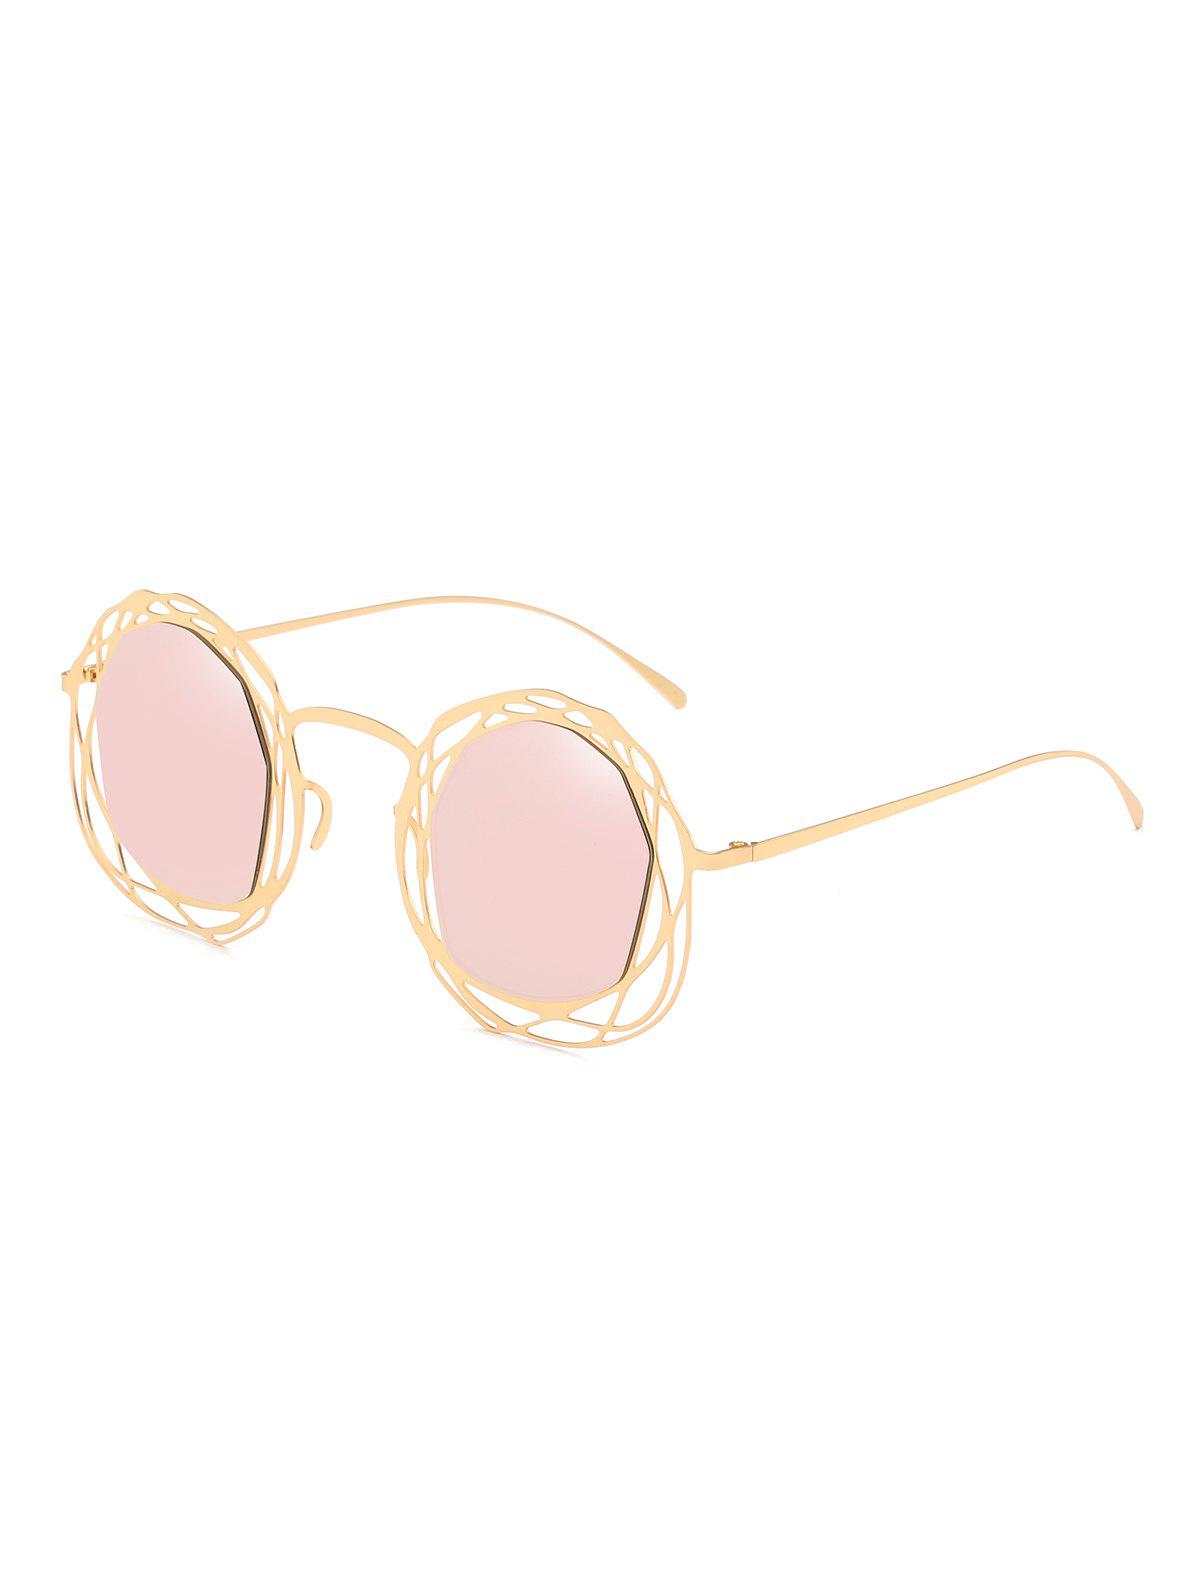 Fancy Irregular Metal Geometric Hollow Out Sunglasses